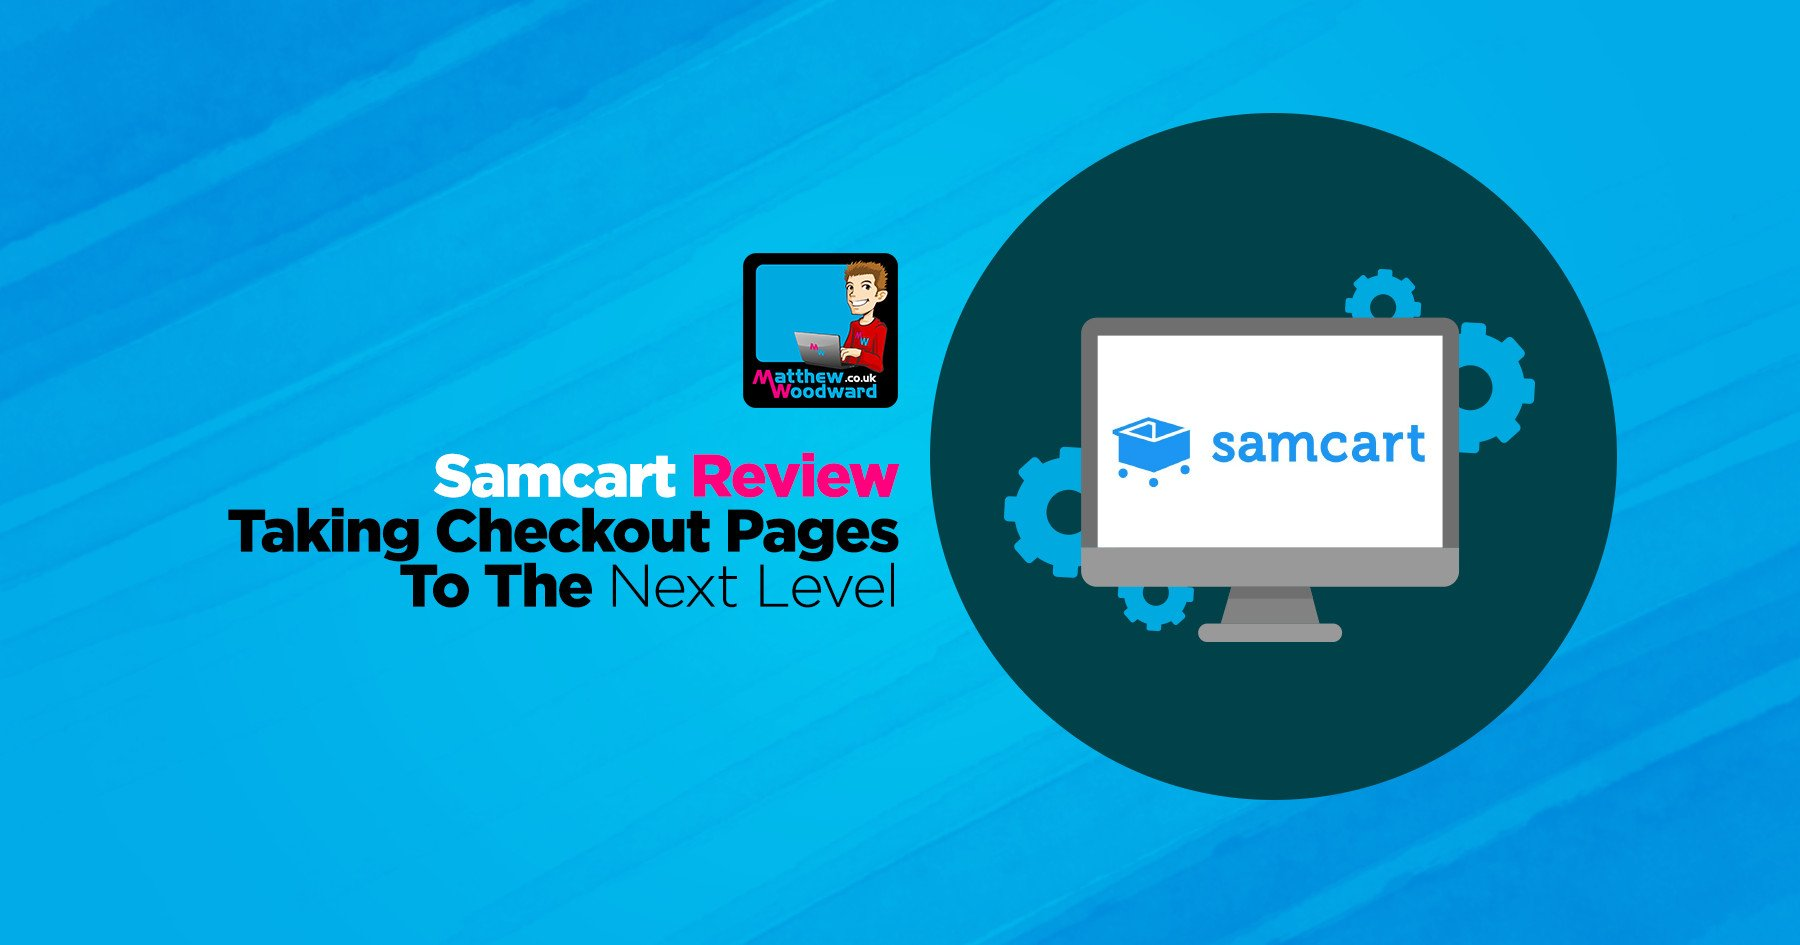 Buy Landing Page Software Samcart  Price Ebay